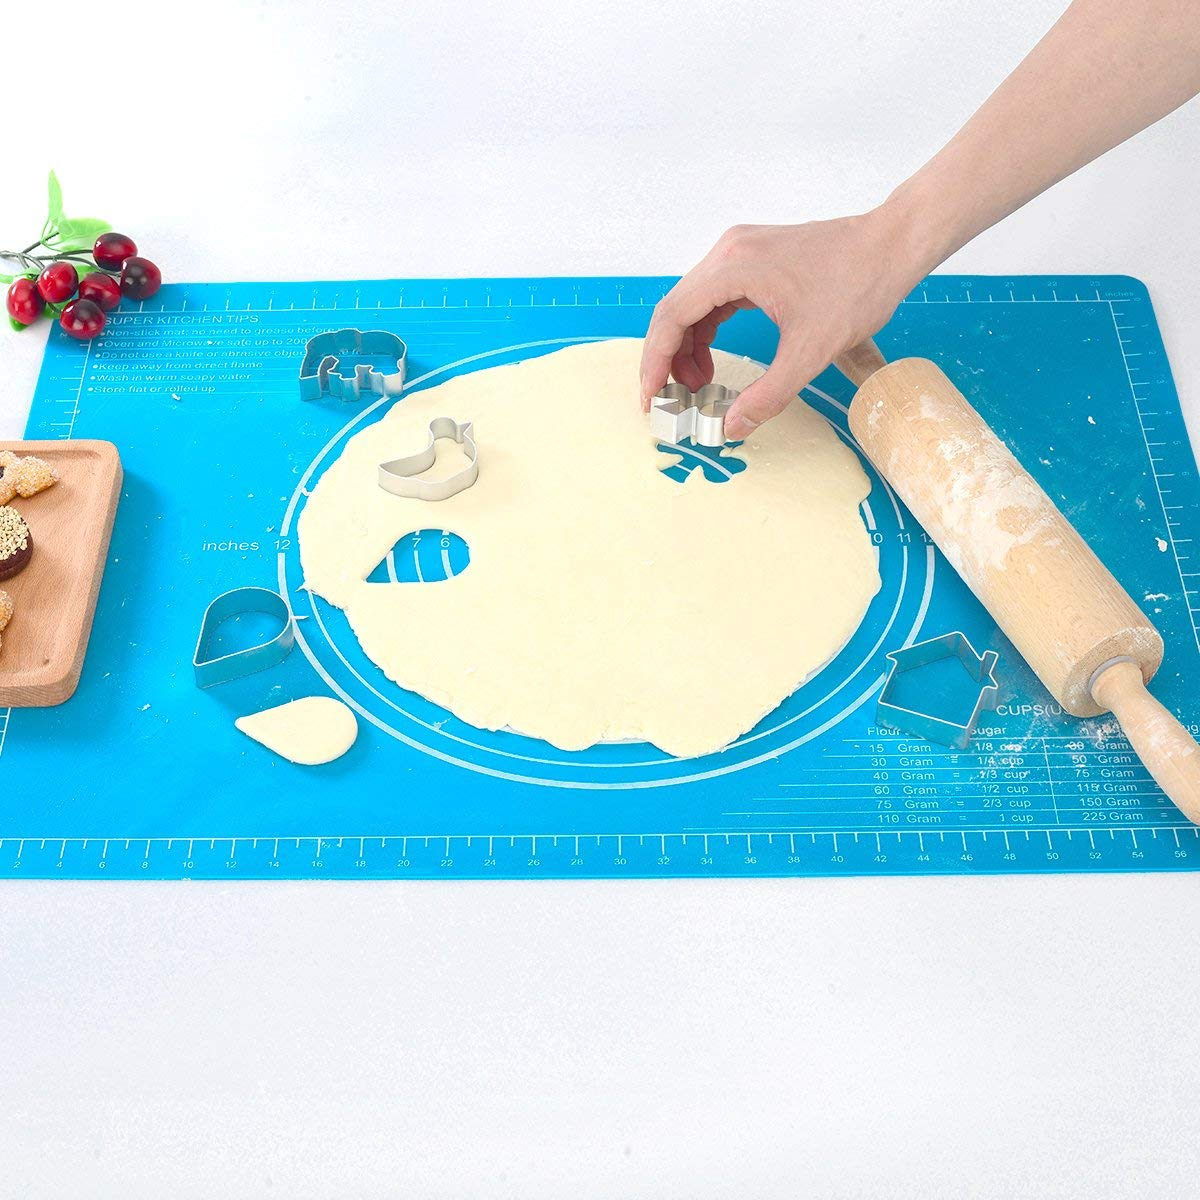 Scelet Non-Stick Silicone Baking Mat Heat Resistance Pastry Rolling Dough Placemat Board Reusable